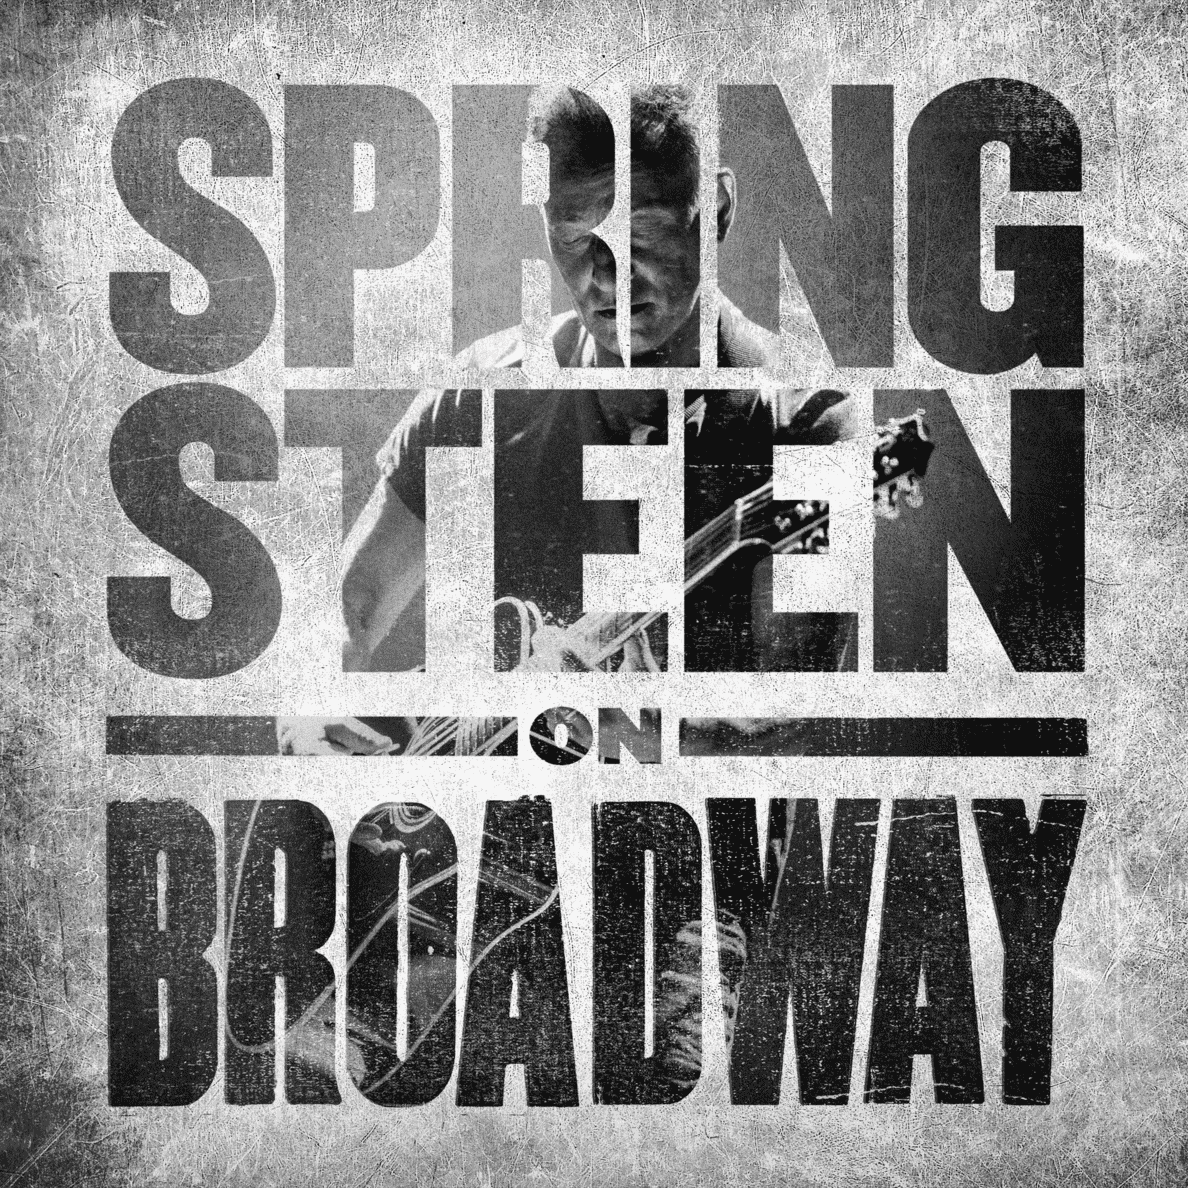 Springsteen on Broadway Bruce Springsteen auf CD